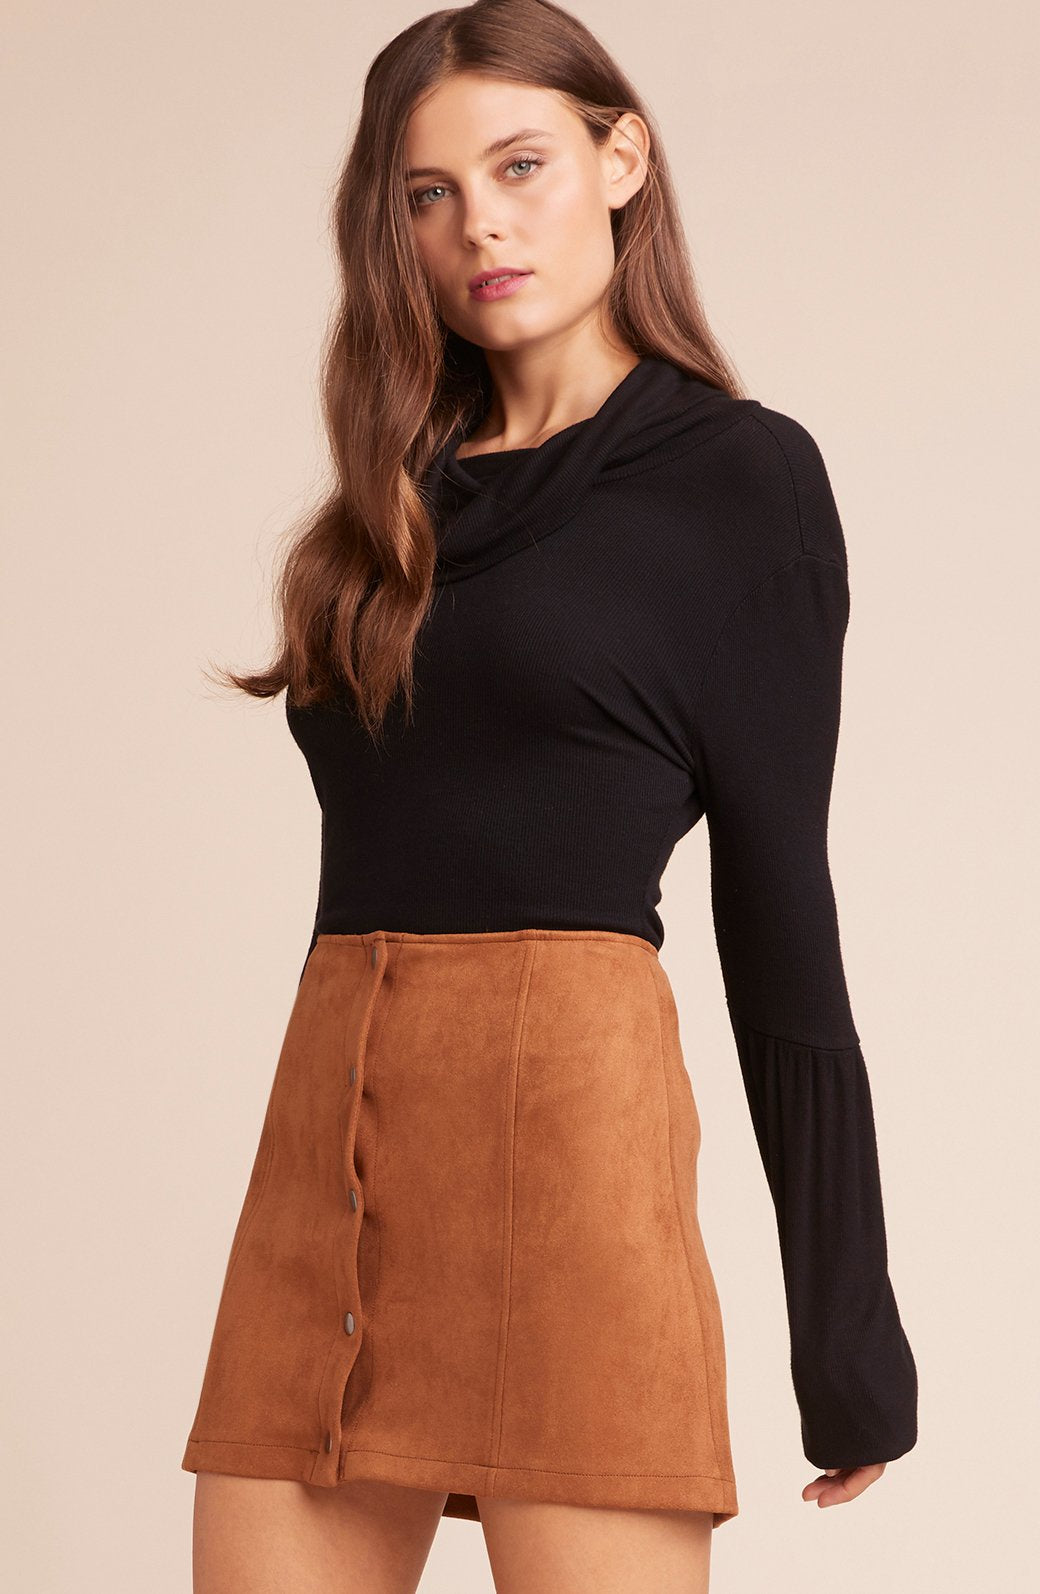 Can't Buy Me Love Snap Front Skirt - Refinery